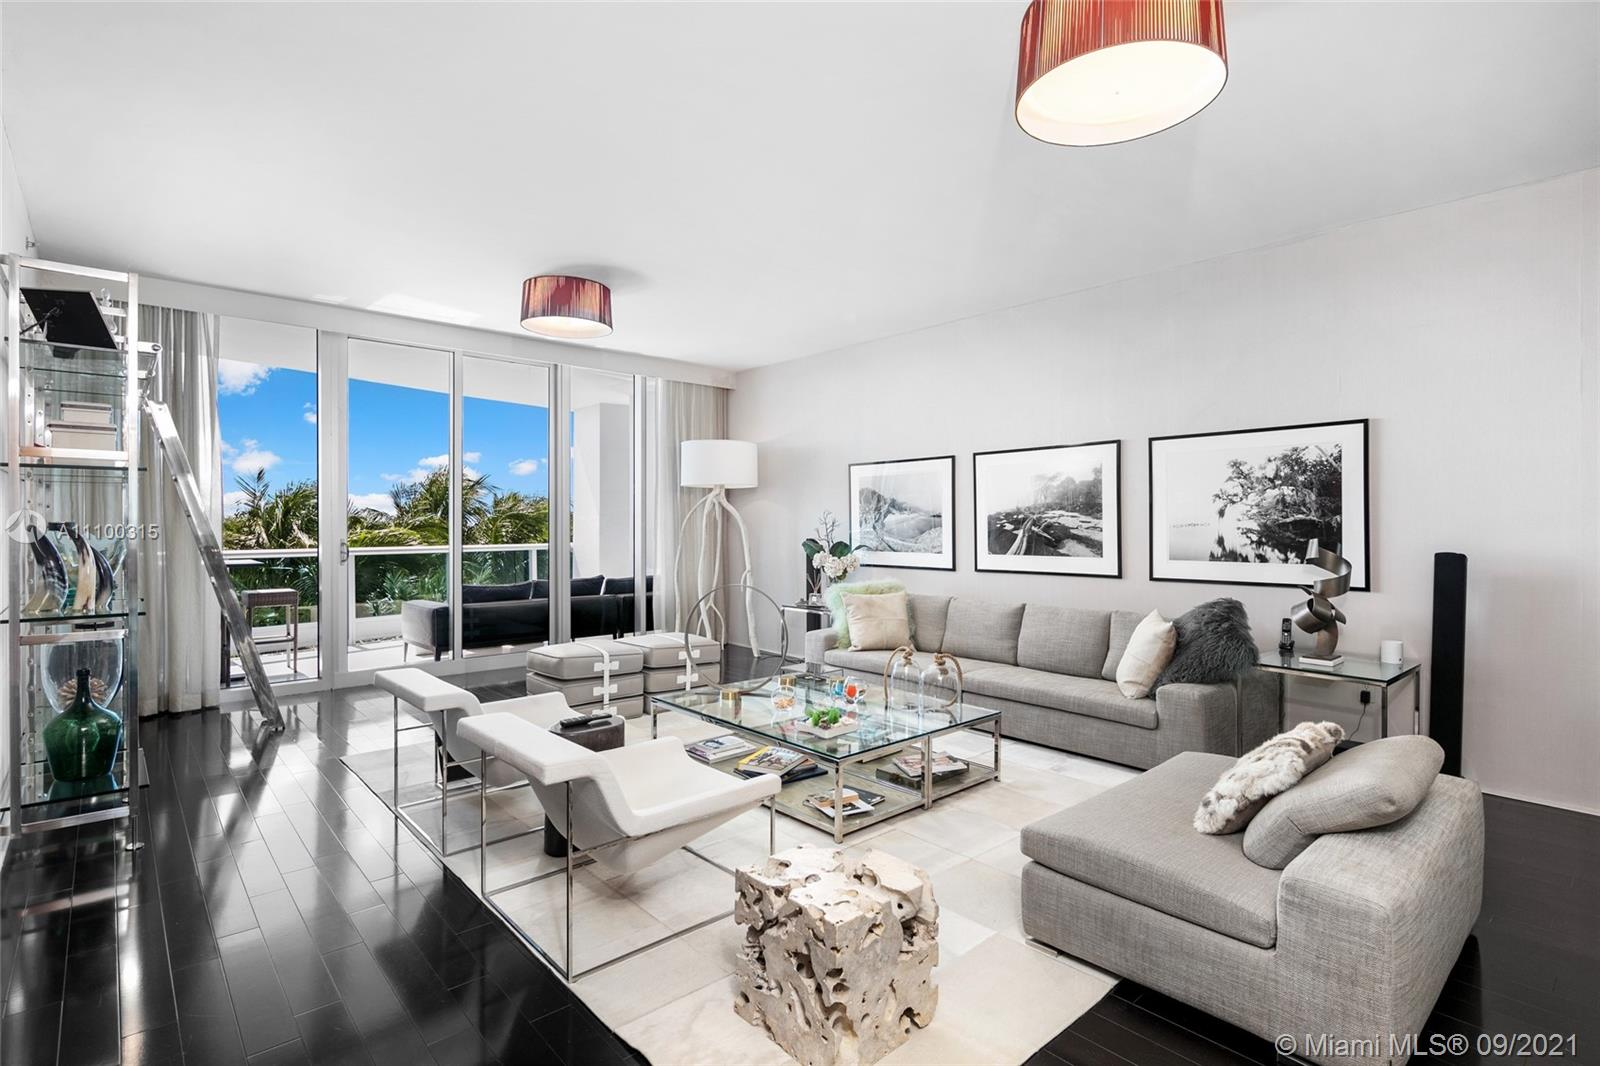 5959 Collins Ave, Unit #704 Luxury Real Estate